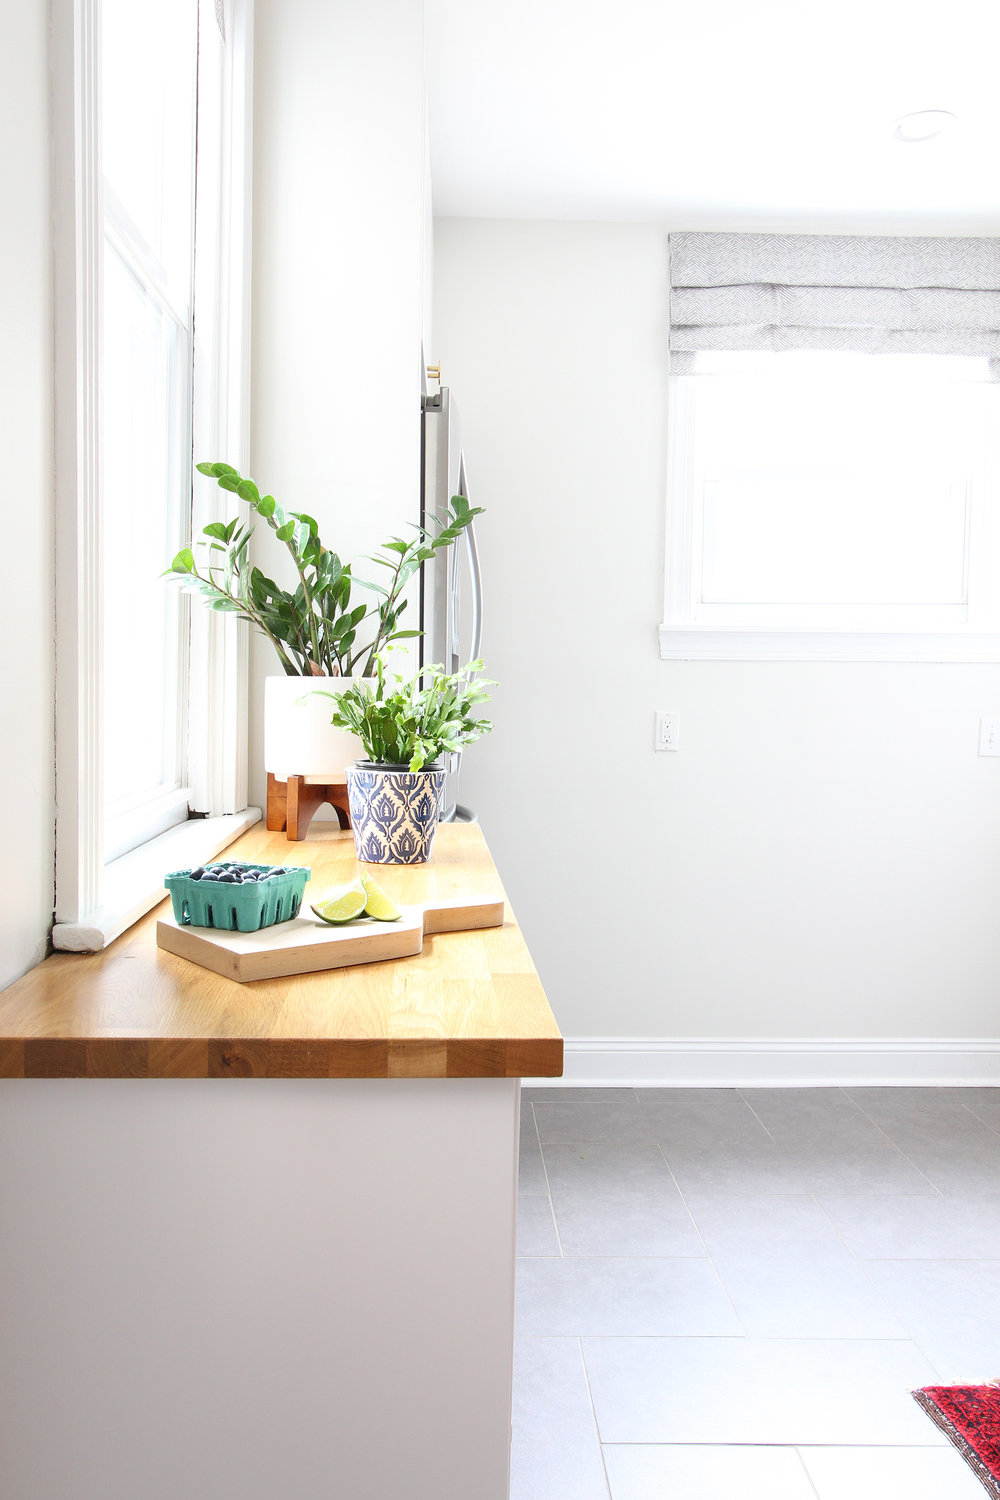 """Read my review of our modern white kitchen renovation using IKEA cabinets, Caesarstone countertops, and gray tile floors two years after we renovated. The butcher block counterotps are on the """"floating cabinets"""" we installed on the far wall of the kitchen."""